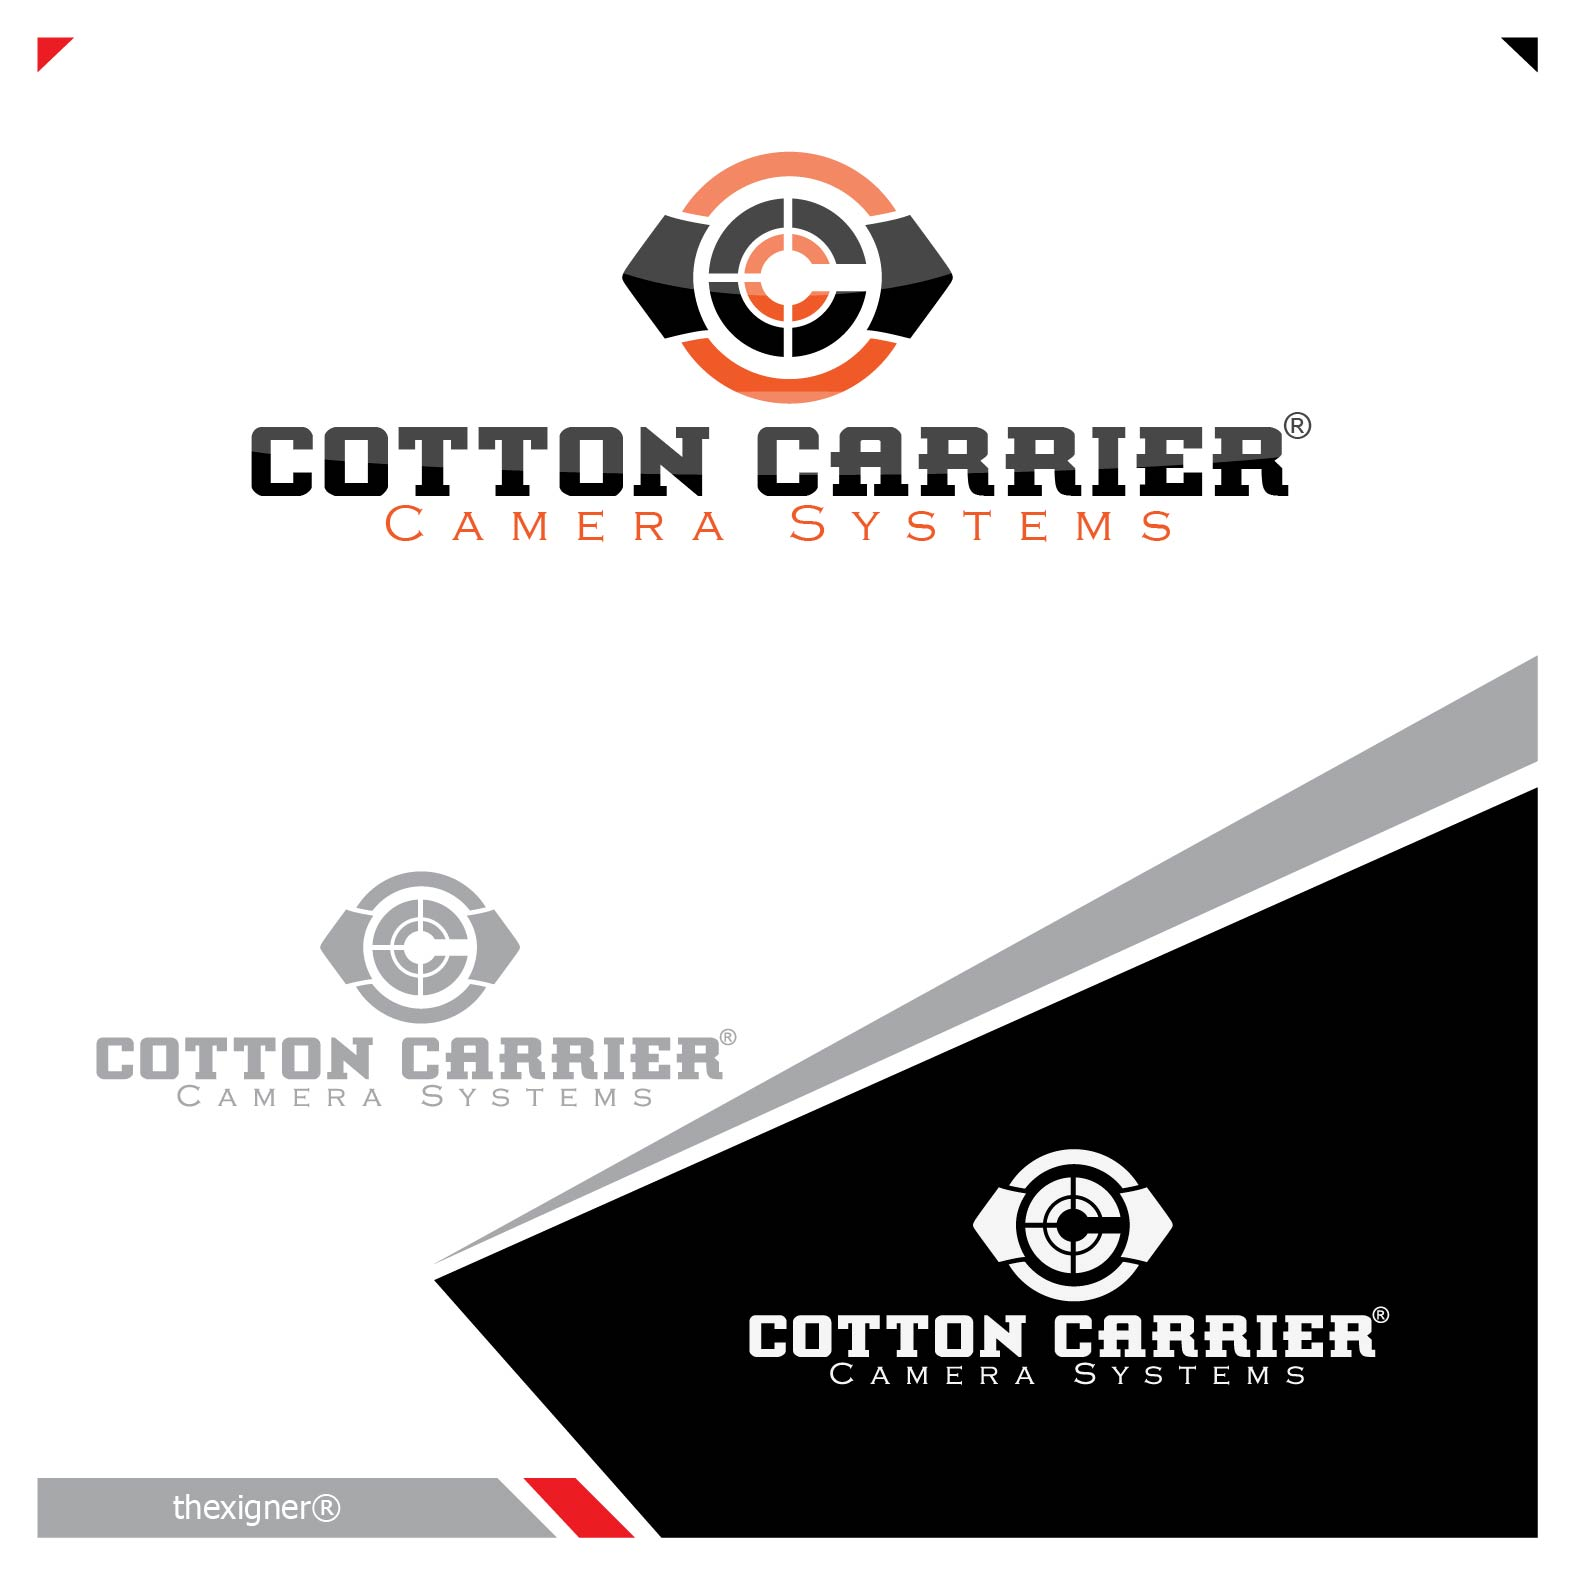 Logo Design by lagalag - Entry No. 10 in the Logo Design Contest Cotton Carrier Camera Systems Logo Design.